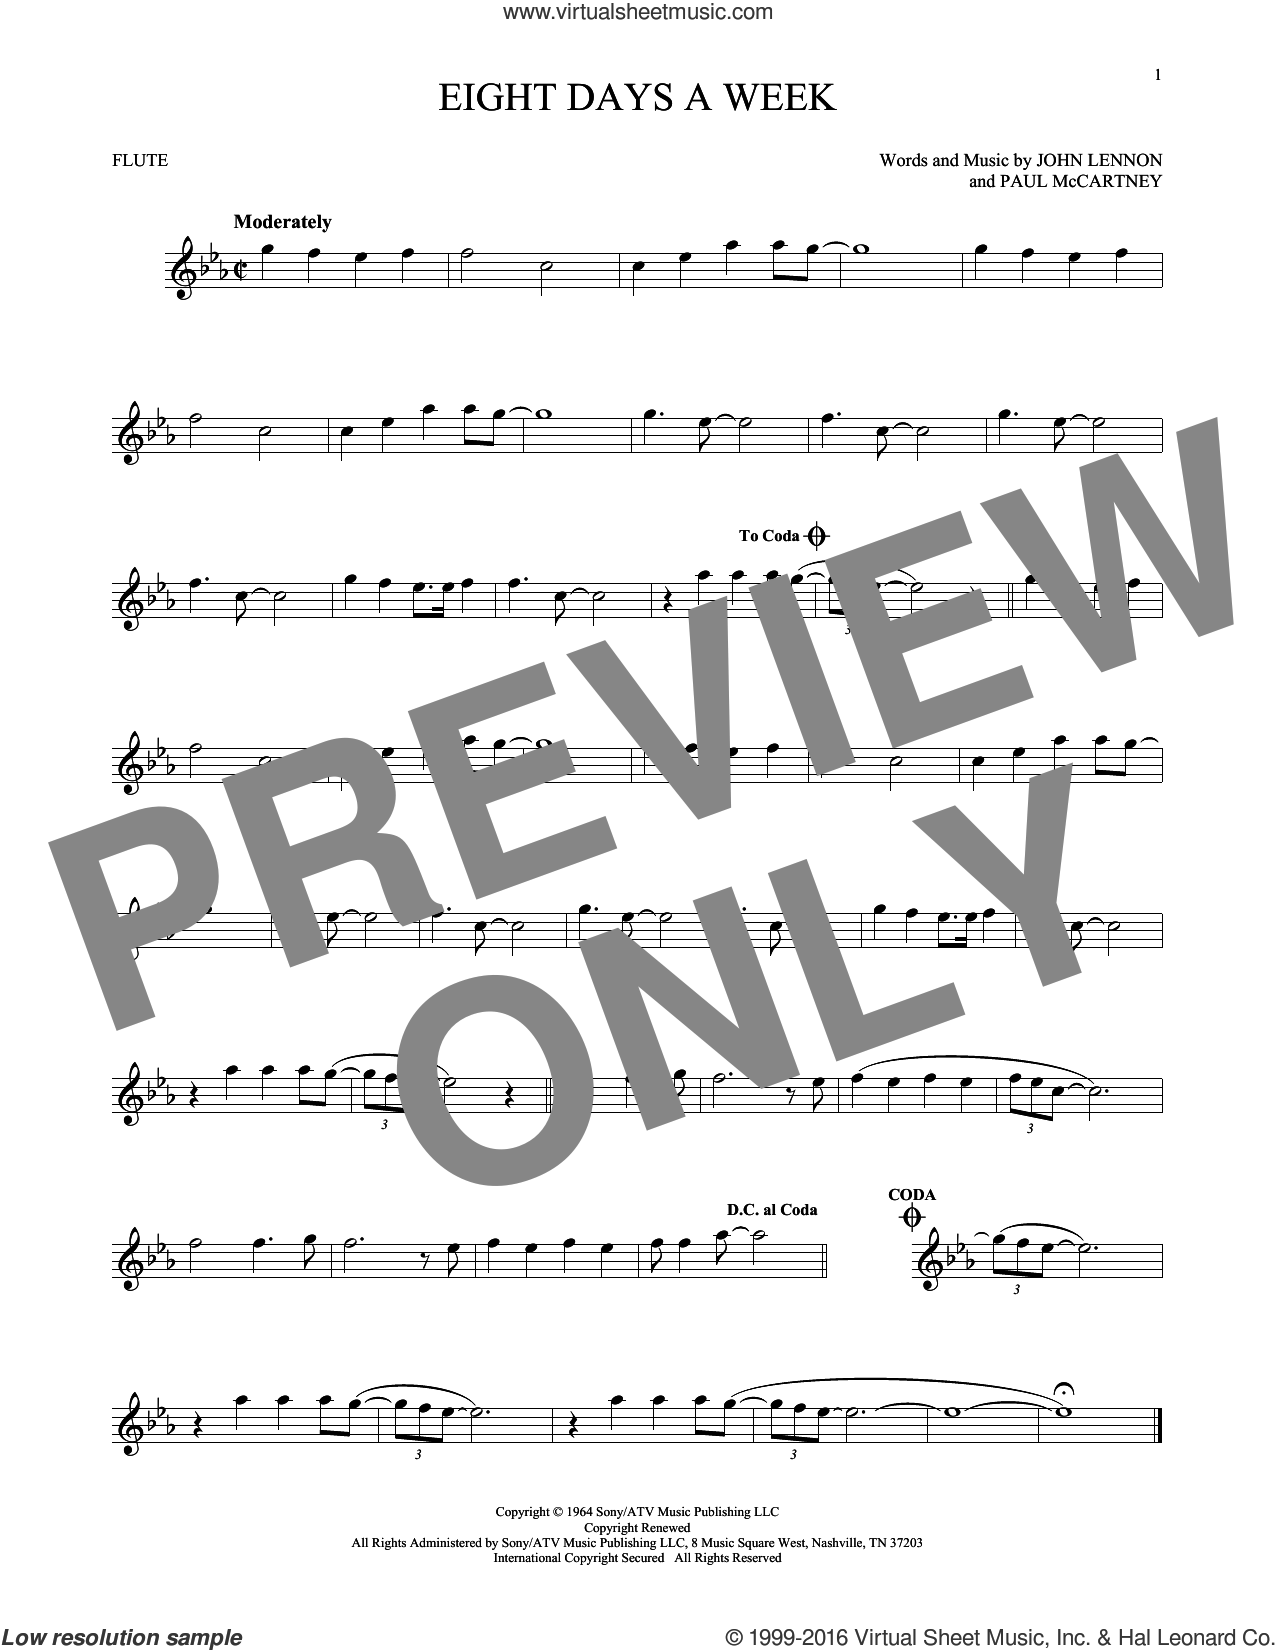 Eight Days A Week sheet music for flute solo by Paul McCartney